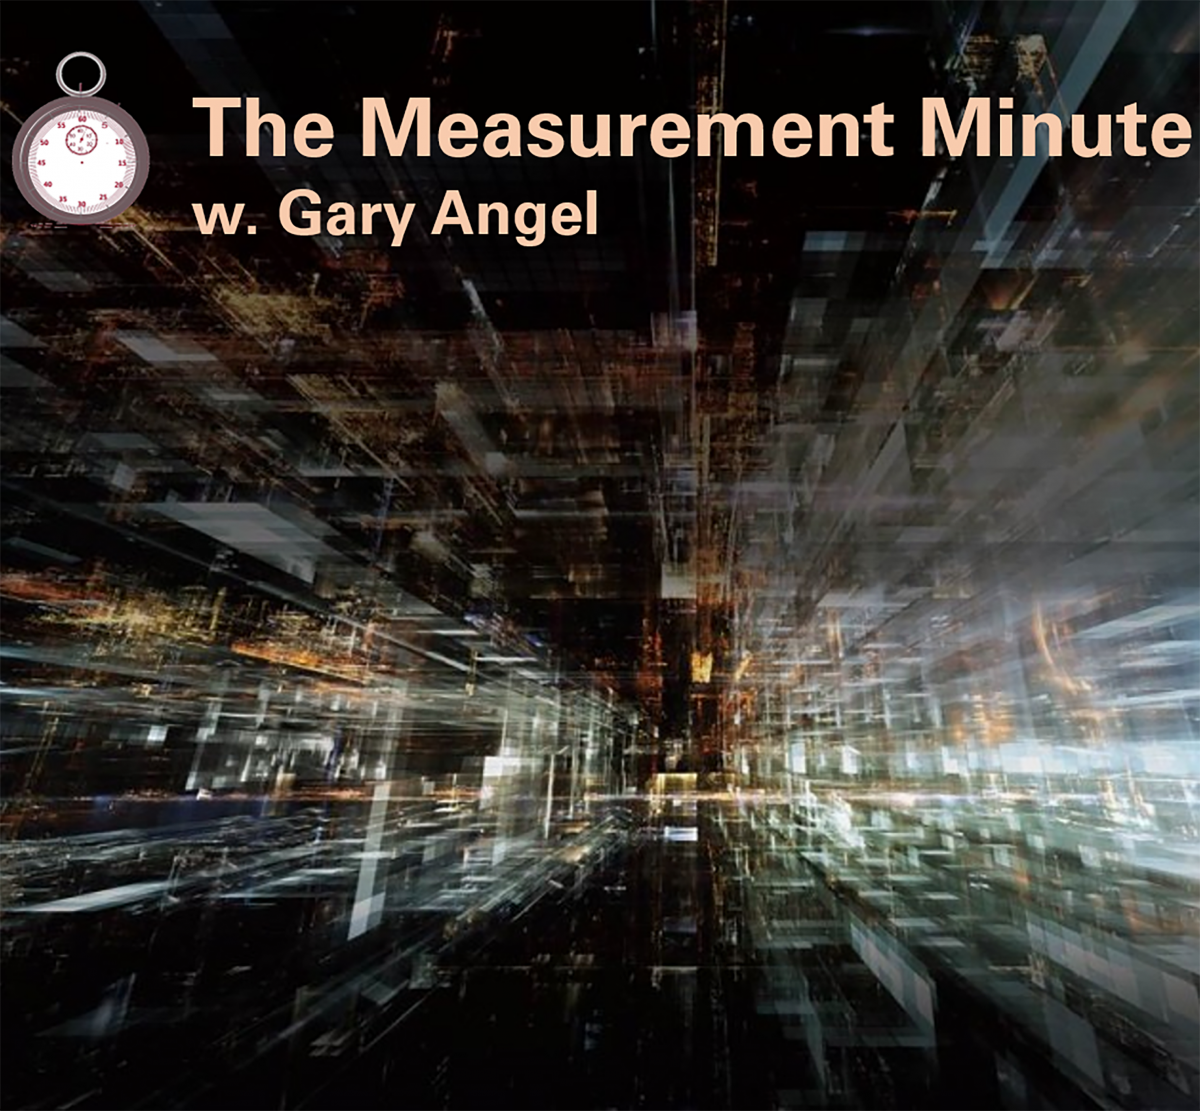 The Measurement Minute Podcast with Gary Angel